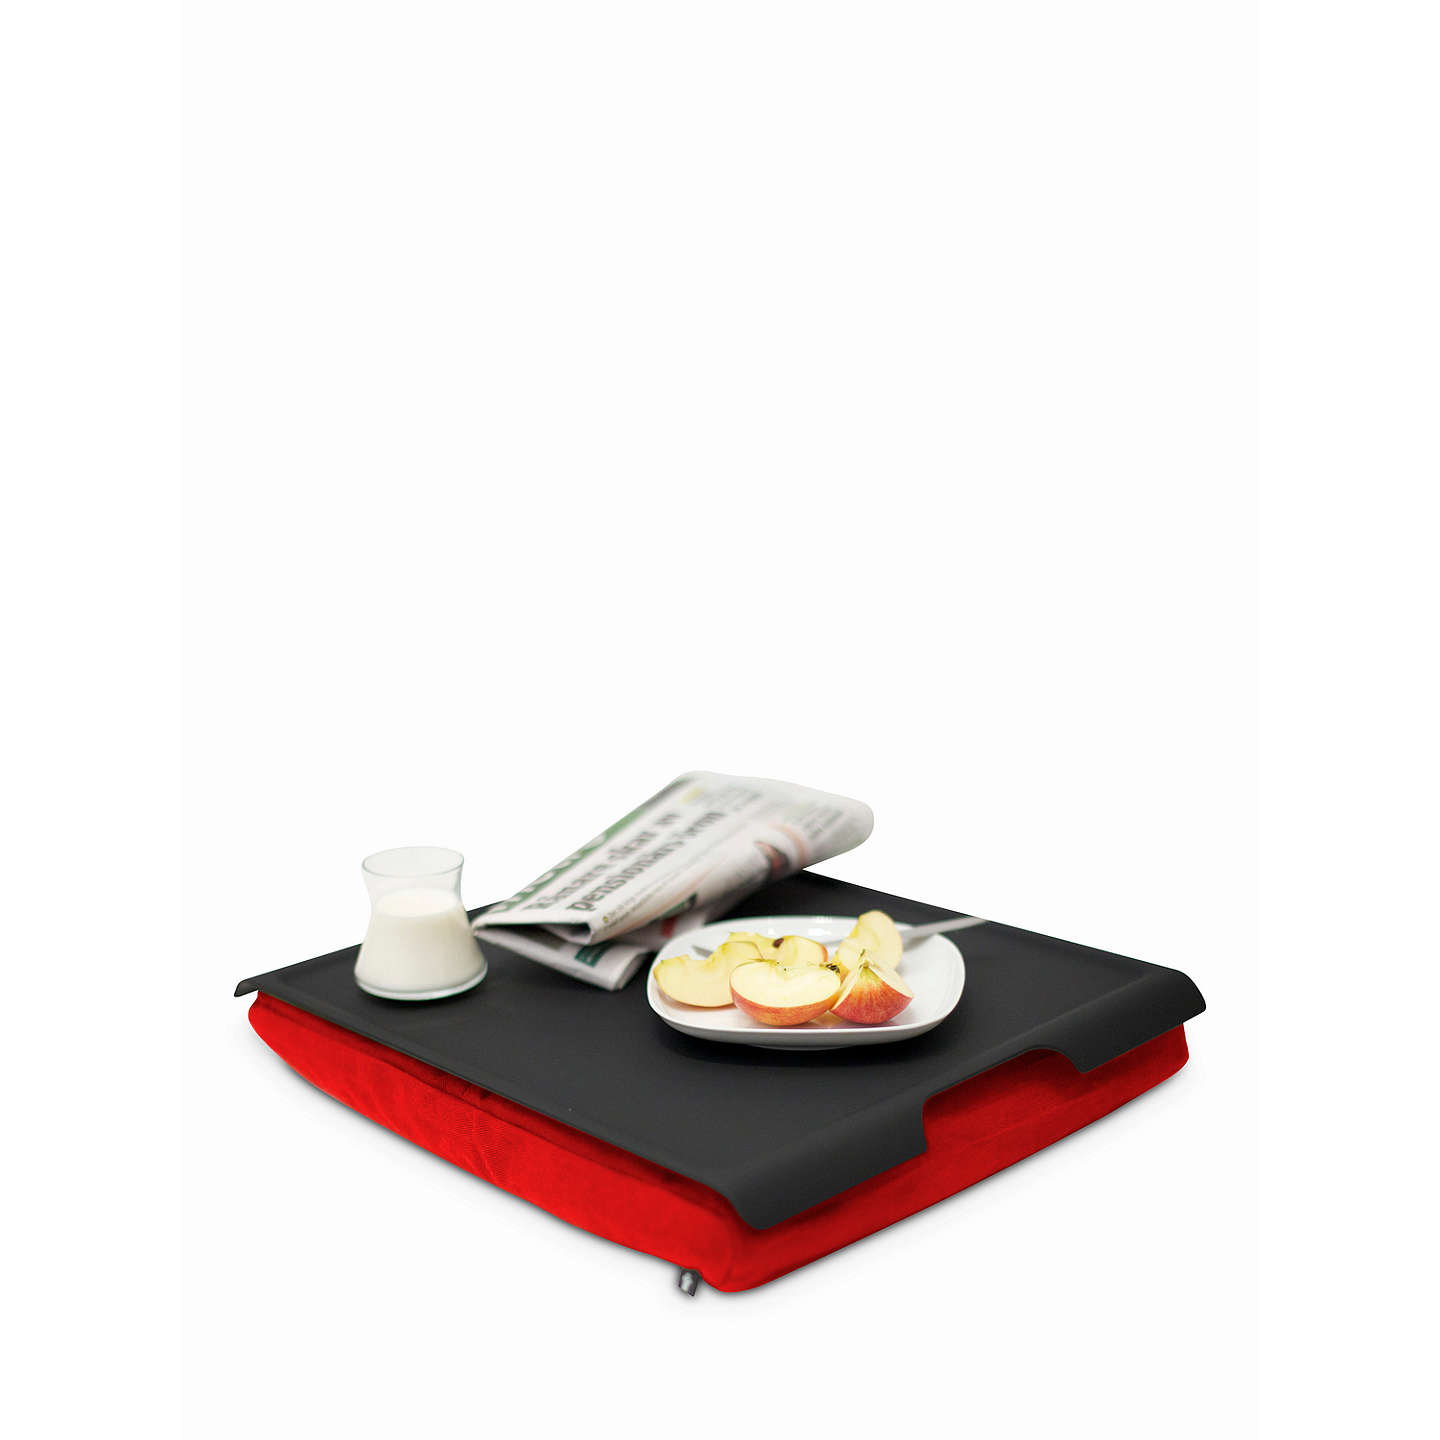 BuyBosign Antislip Wood Lap Tray, Black/Red Online at johnlewis.com